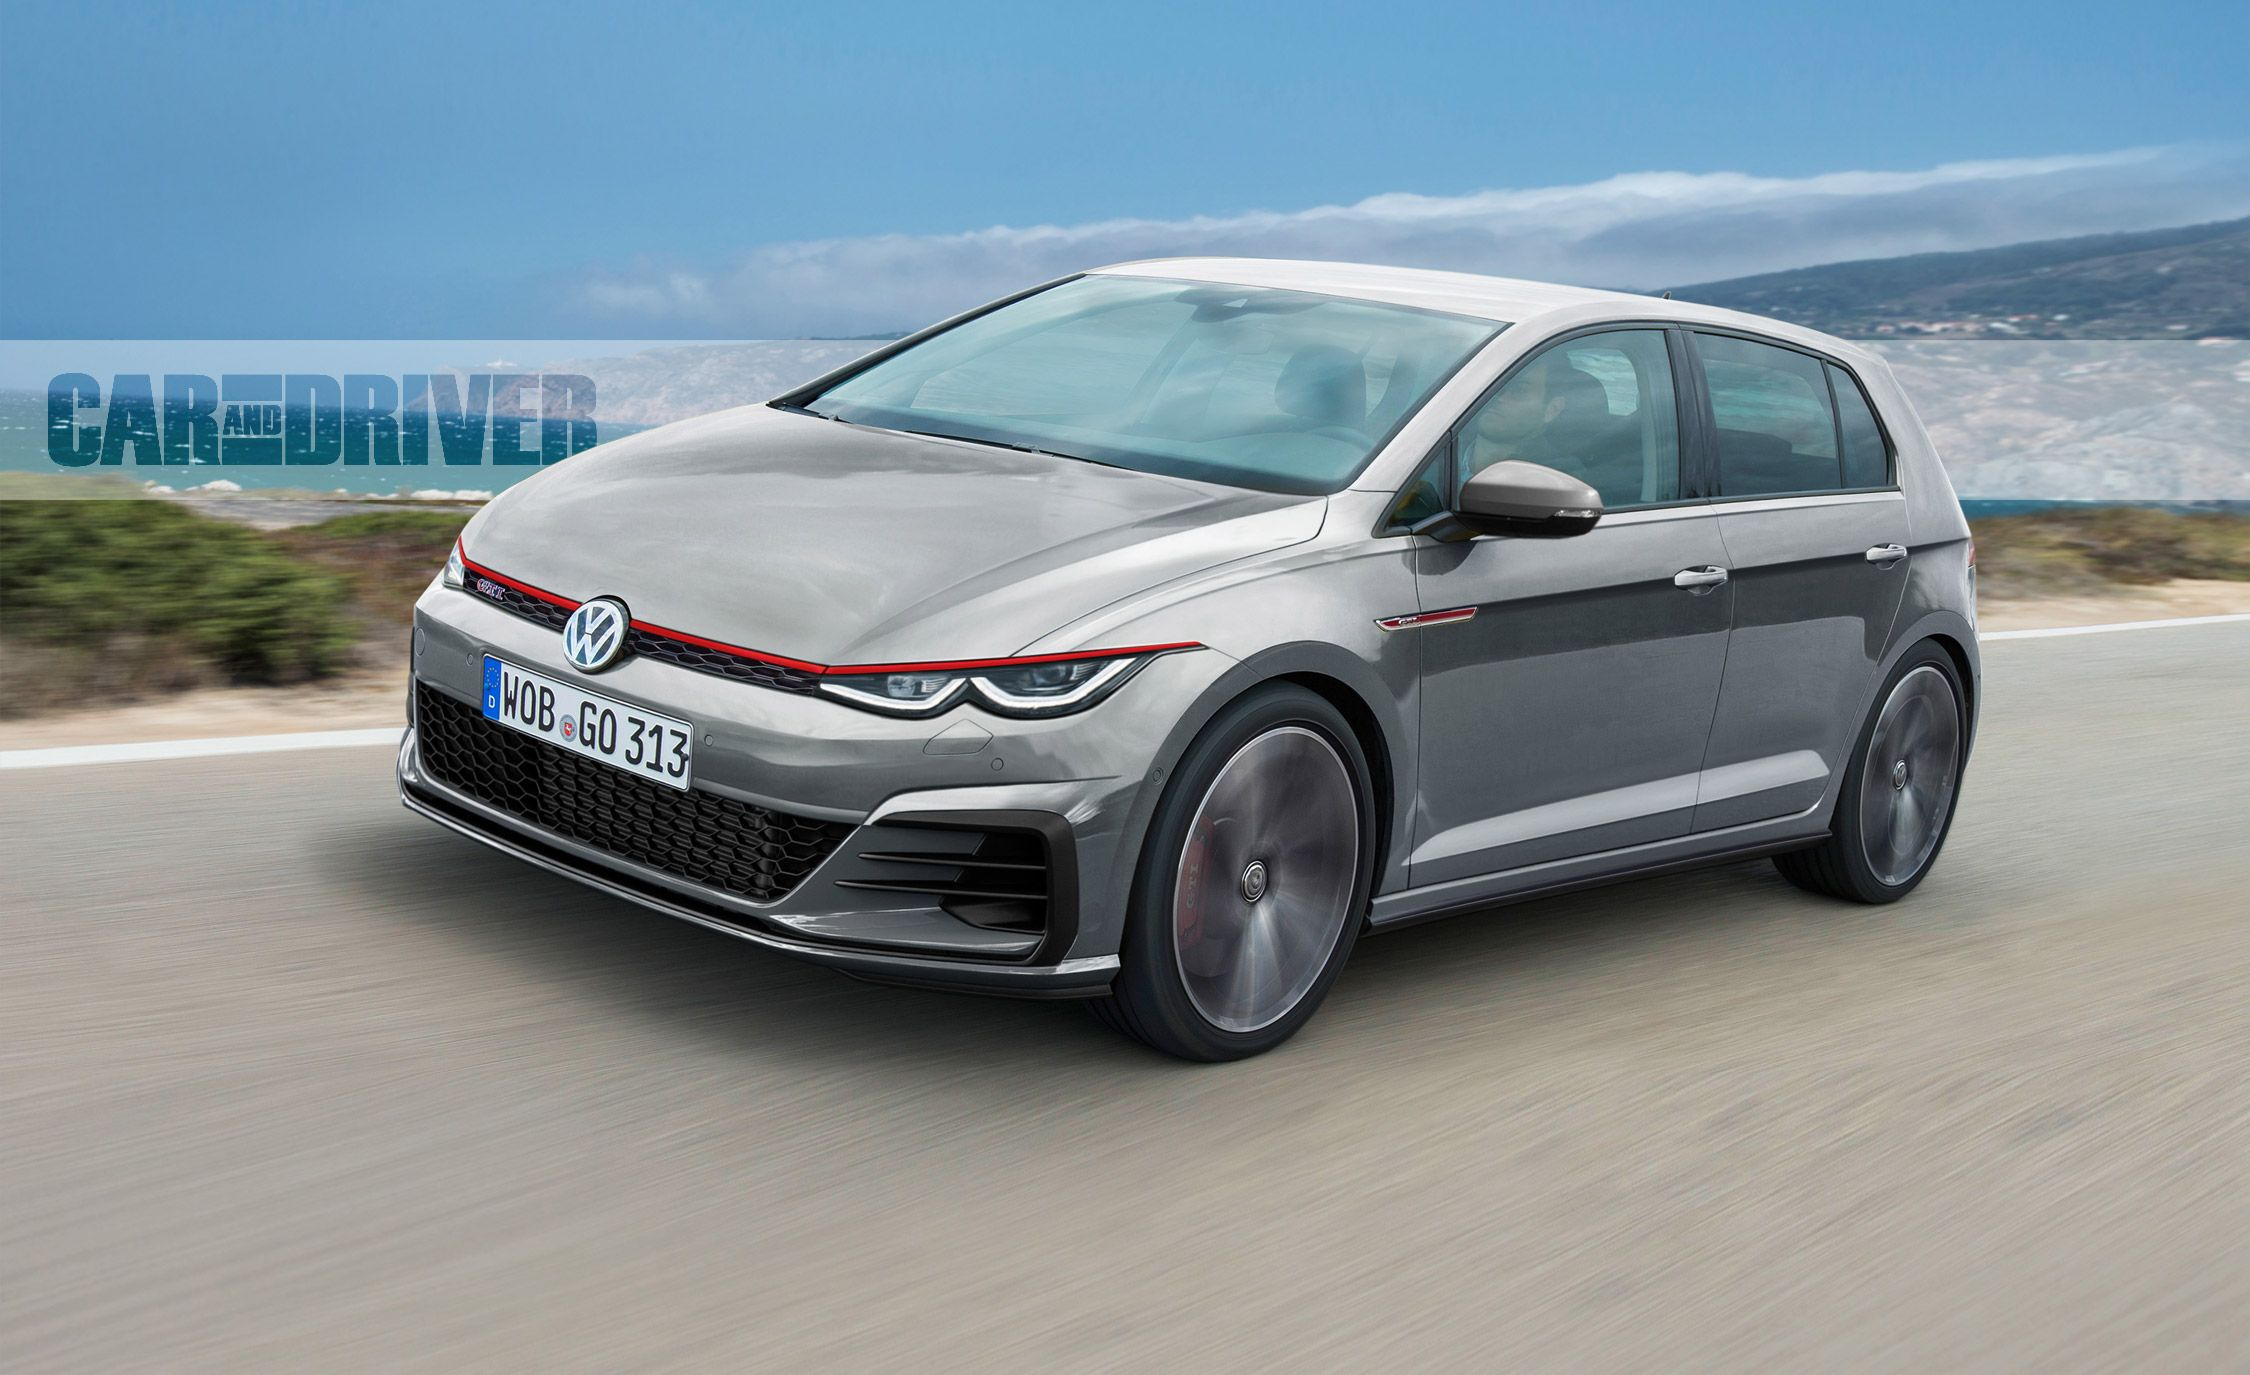 2020 Volkswagen Golf GTI: We Expect Nothing Short of Hot-Hatch Greatness | 25 Cars Worth Waiting ...